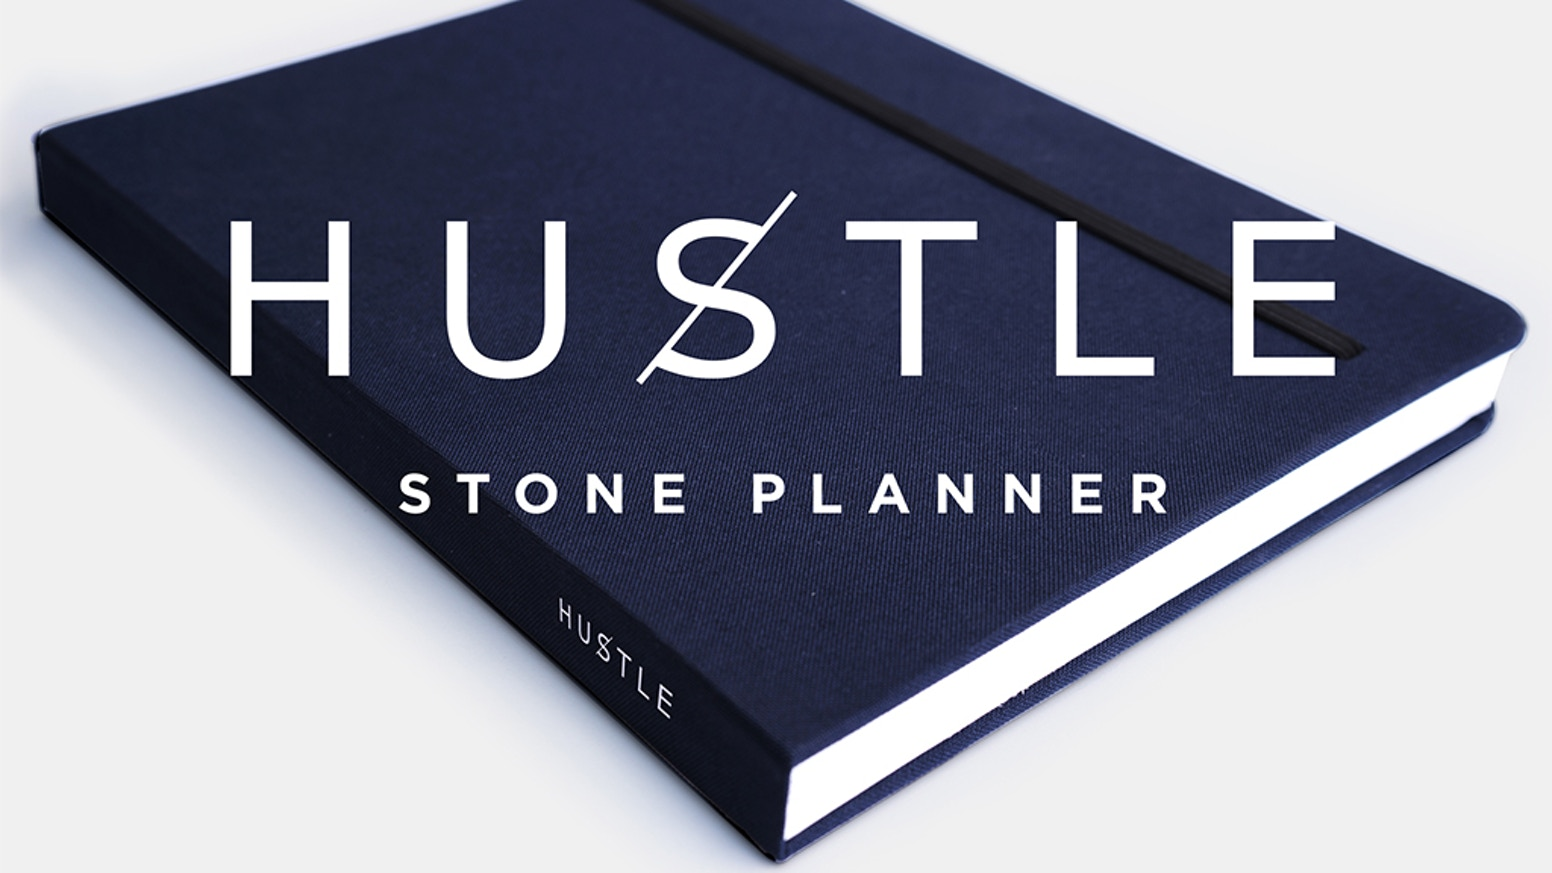 A Premium Planner -  | Made with revolutionary Stone Paper, earth friendly with content designed by experts.